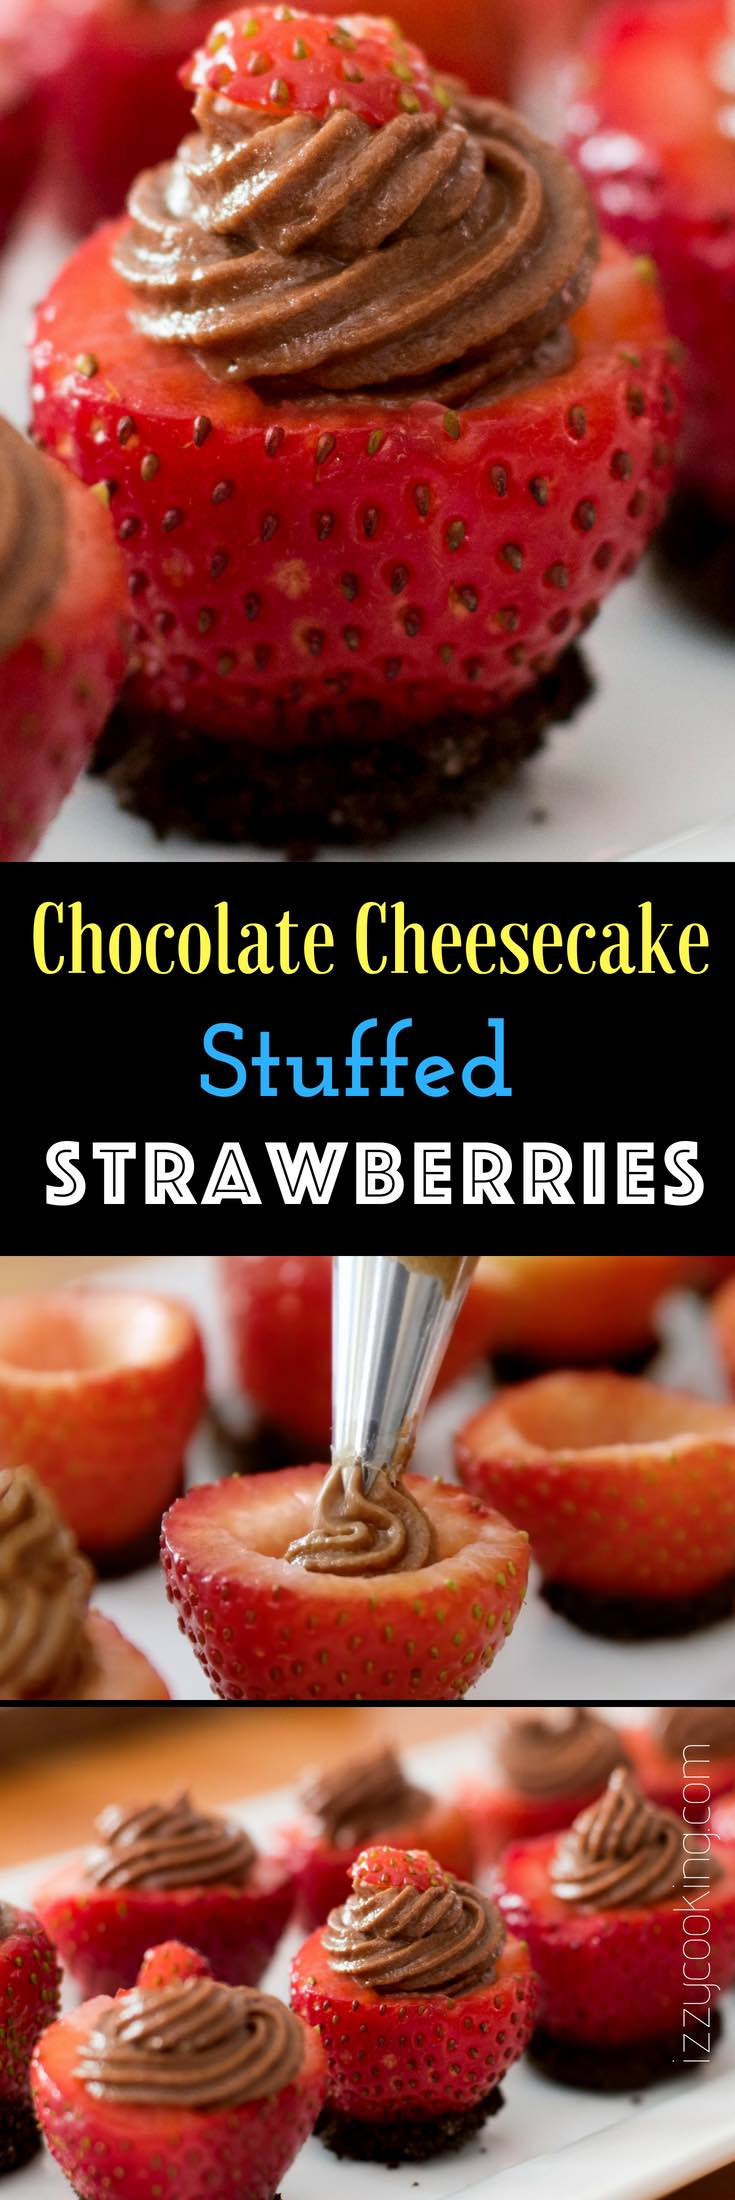 Chocolate Cheesecake Filled Strawberries- mouthwatering and creamy chocolate cheesecake stuffed in fresh strawberries. A no-bake dessert takes only 15 minutes to make! It's the perfect make-ahead dessert for a party or holiday with friends and family.